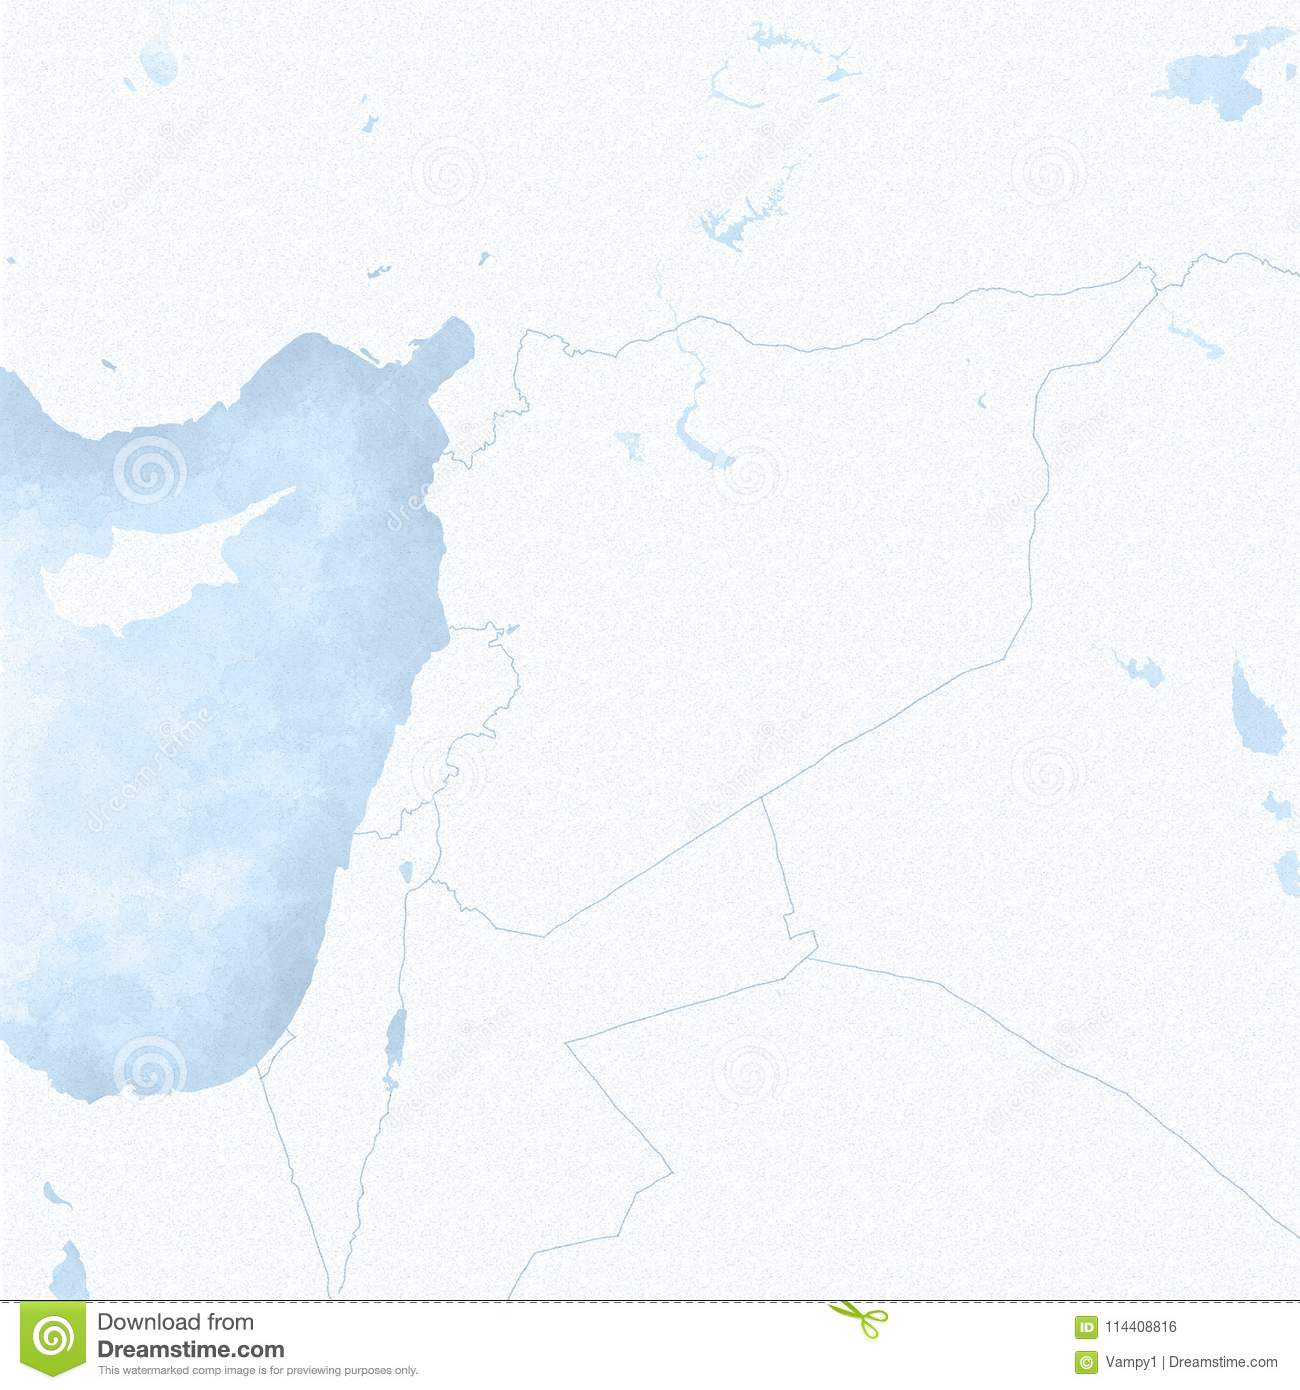 Picture of: Map Of Syria And Borders Physical Map Middle East Arabian Peninsula Map With Reliefs And Mountains And Mediterranean Sea Stock Illustration Illustration Of Peninsula Iraq 114408816